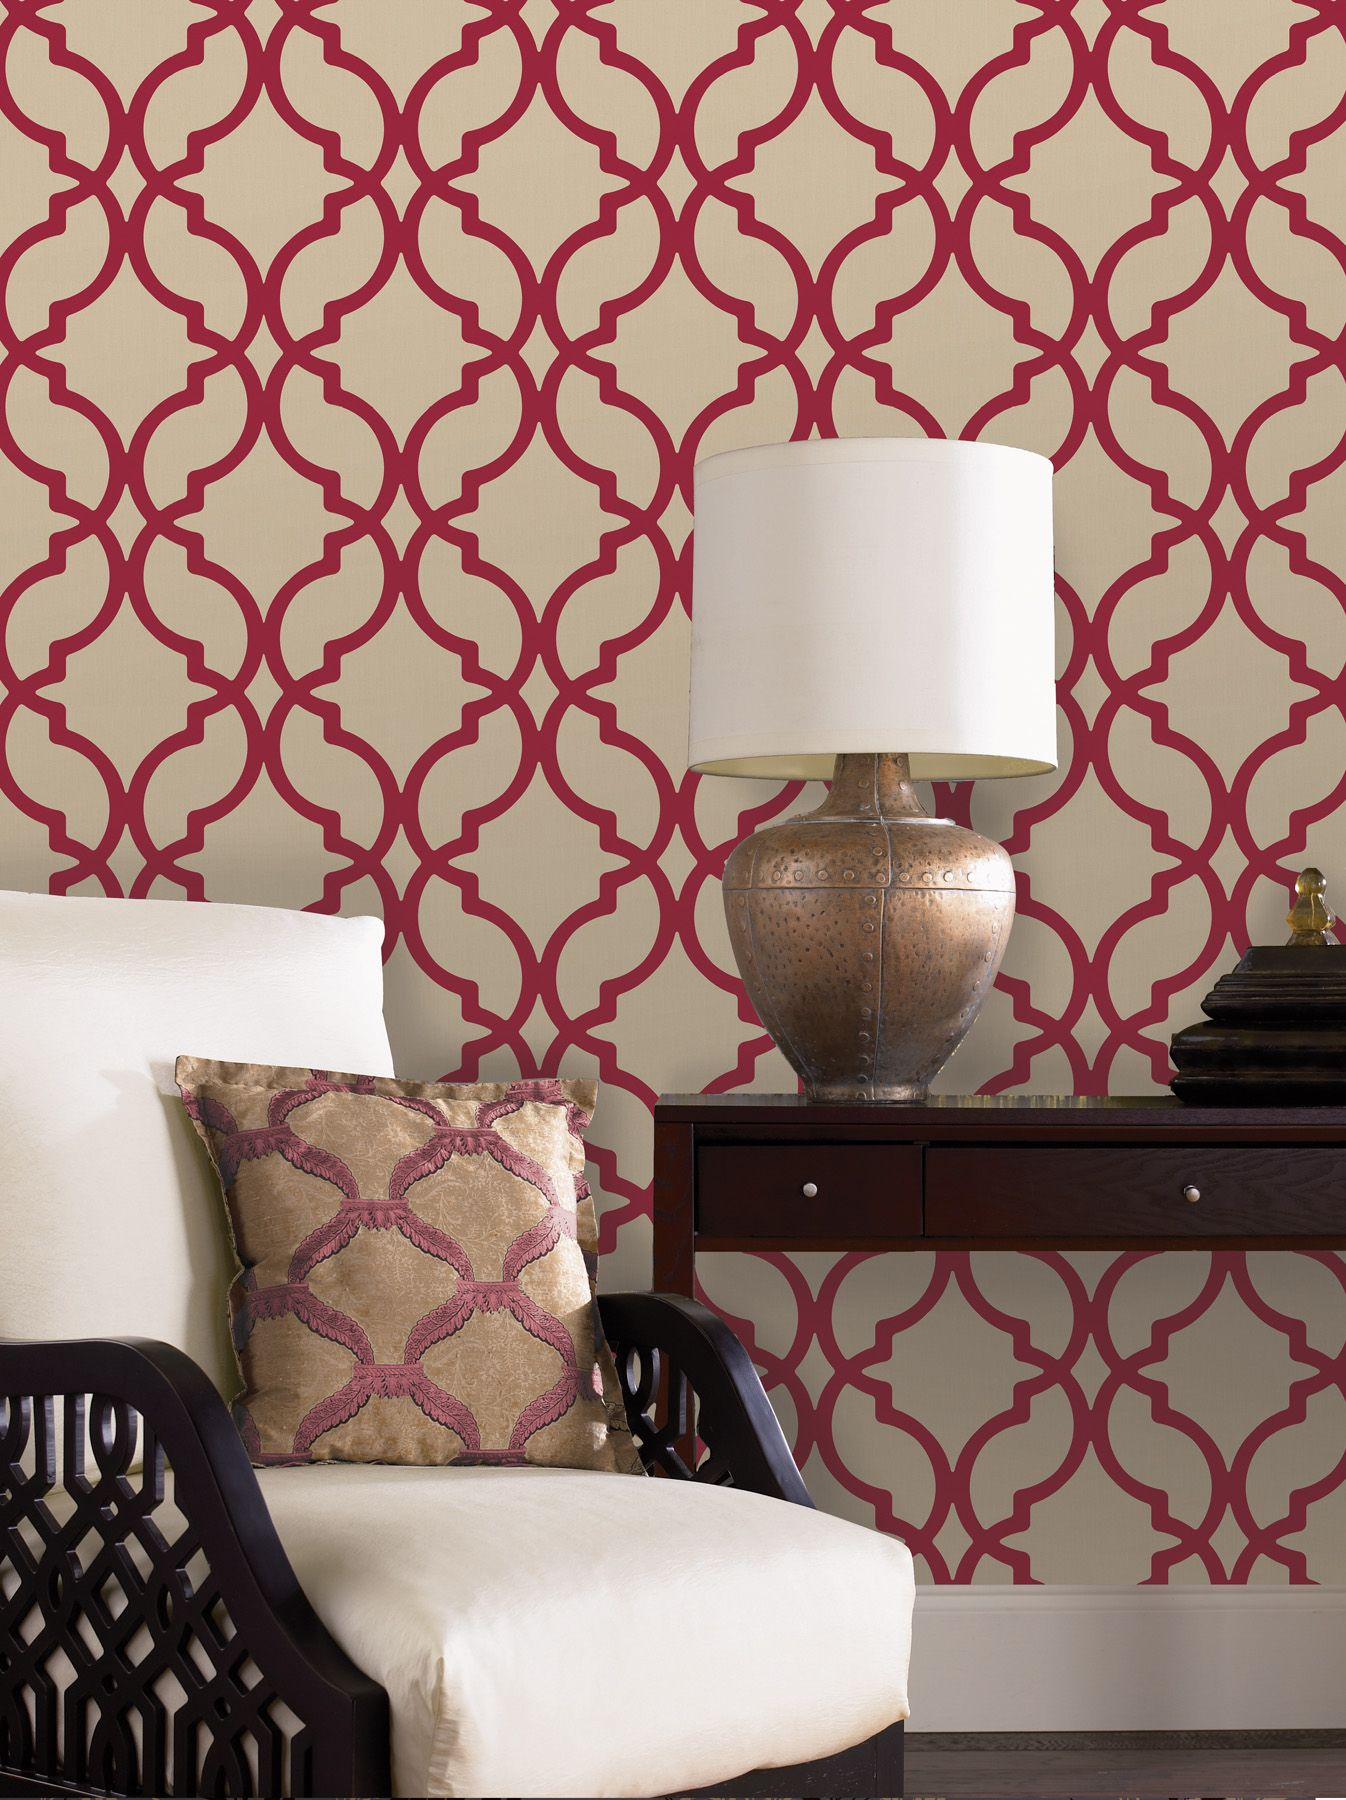 Modern Wallpaper Feature Wall Red And White Living Room Decor Idea Design Living Room Wallpaper Contemporary Wallpaper Living Room Wallpaper Living Room